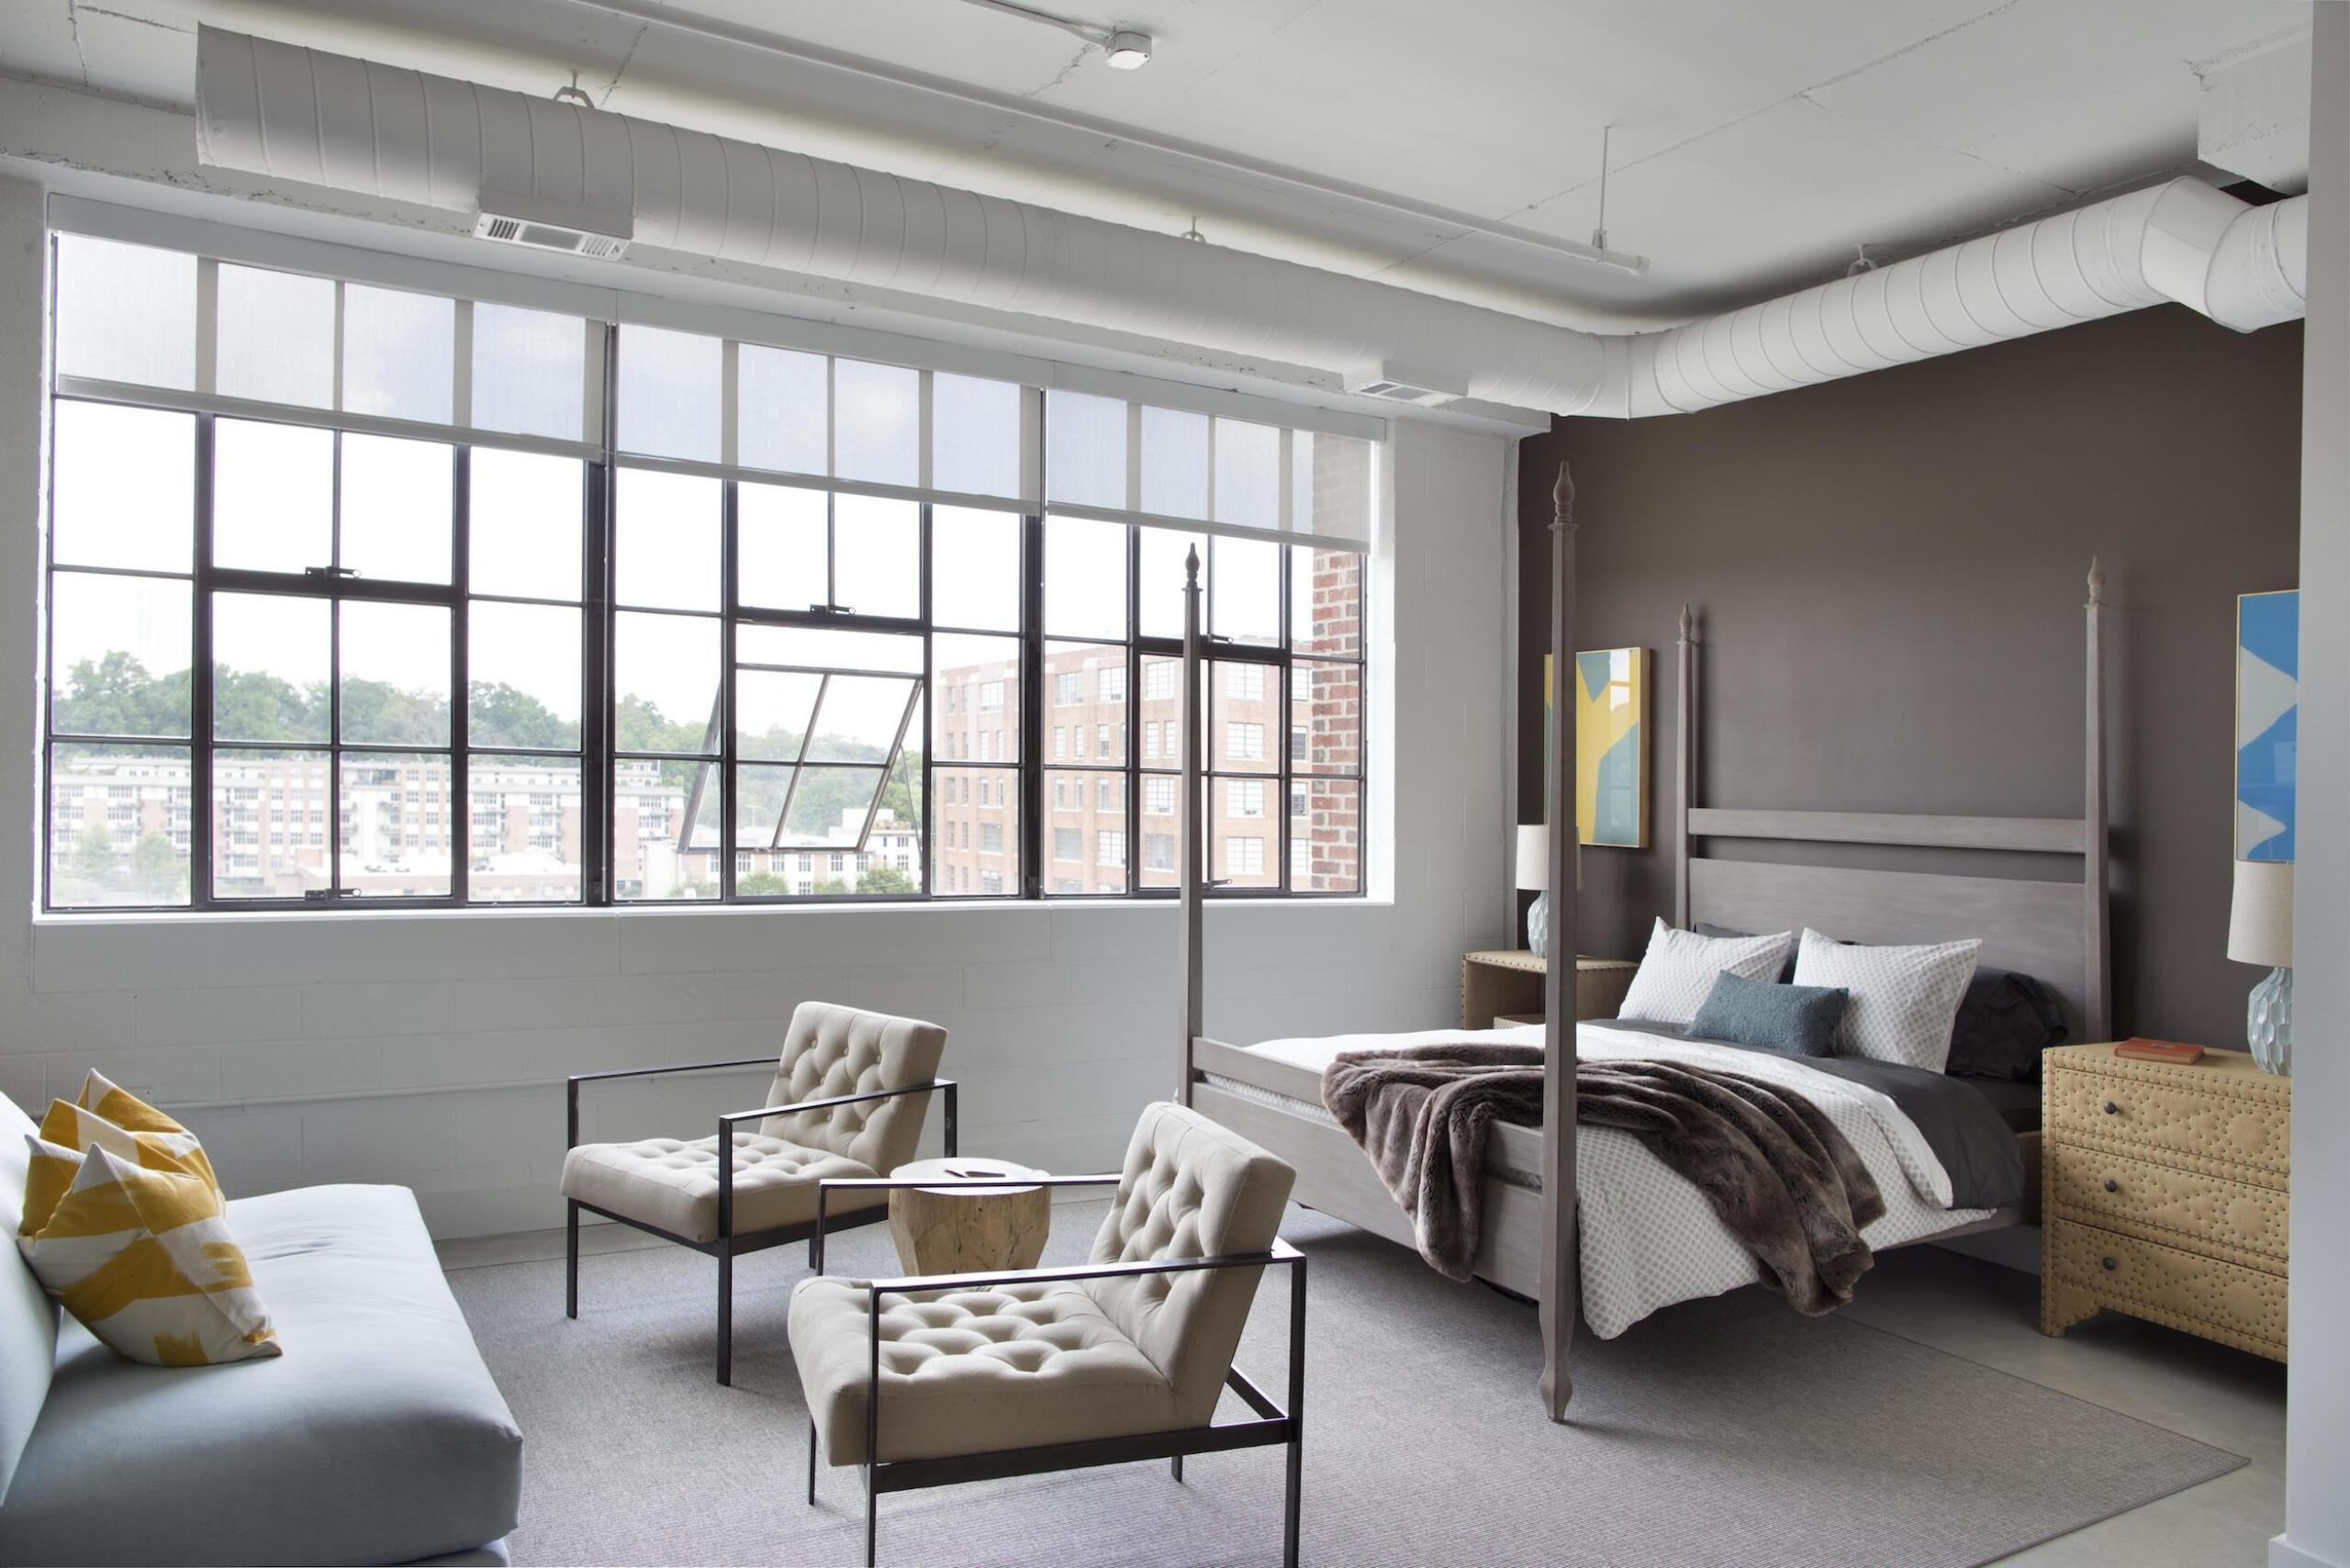 Flats at Ponce City Market bedroom interior with bed, sofa, and chairs